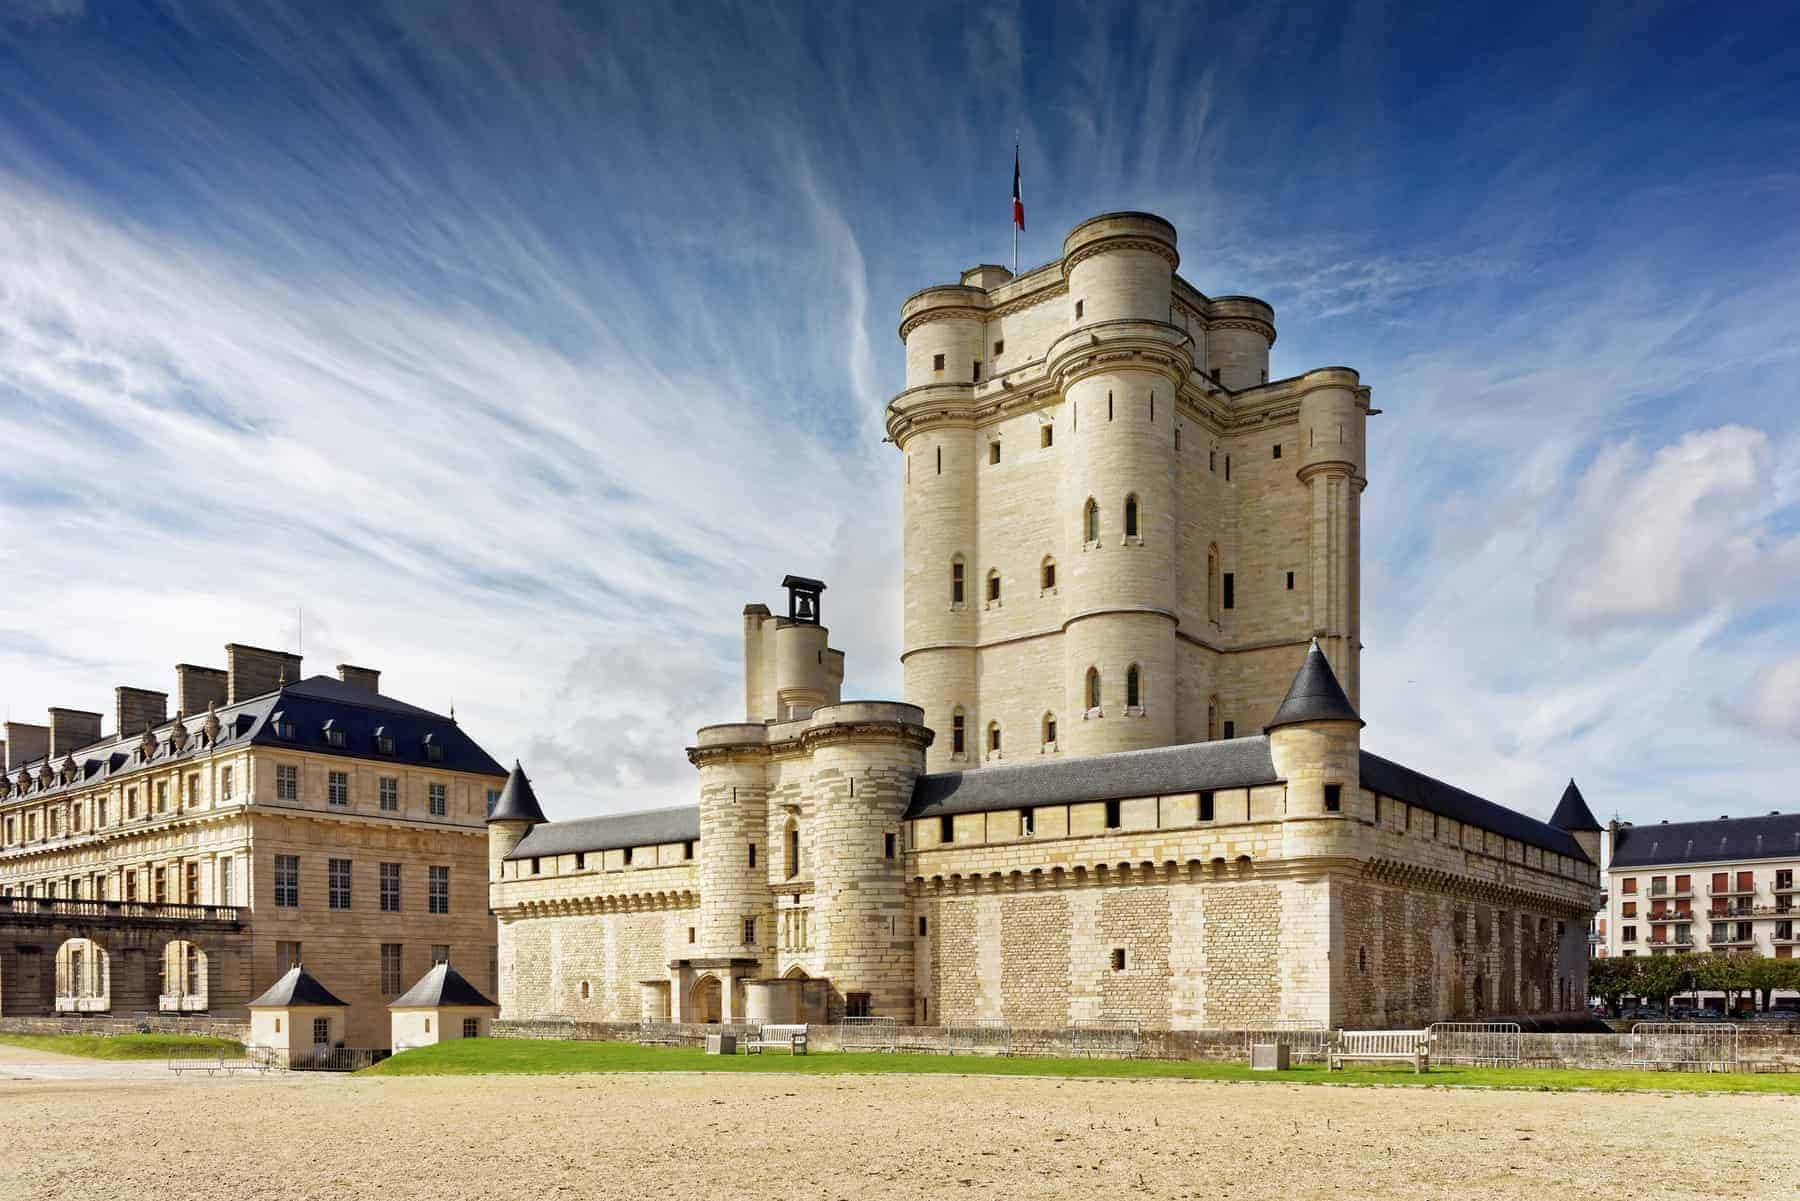 Chateau de Vincennes in Paris. France castle with French national flag under the sunny blue sky.